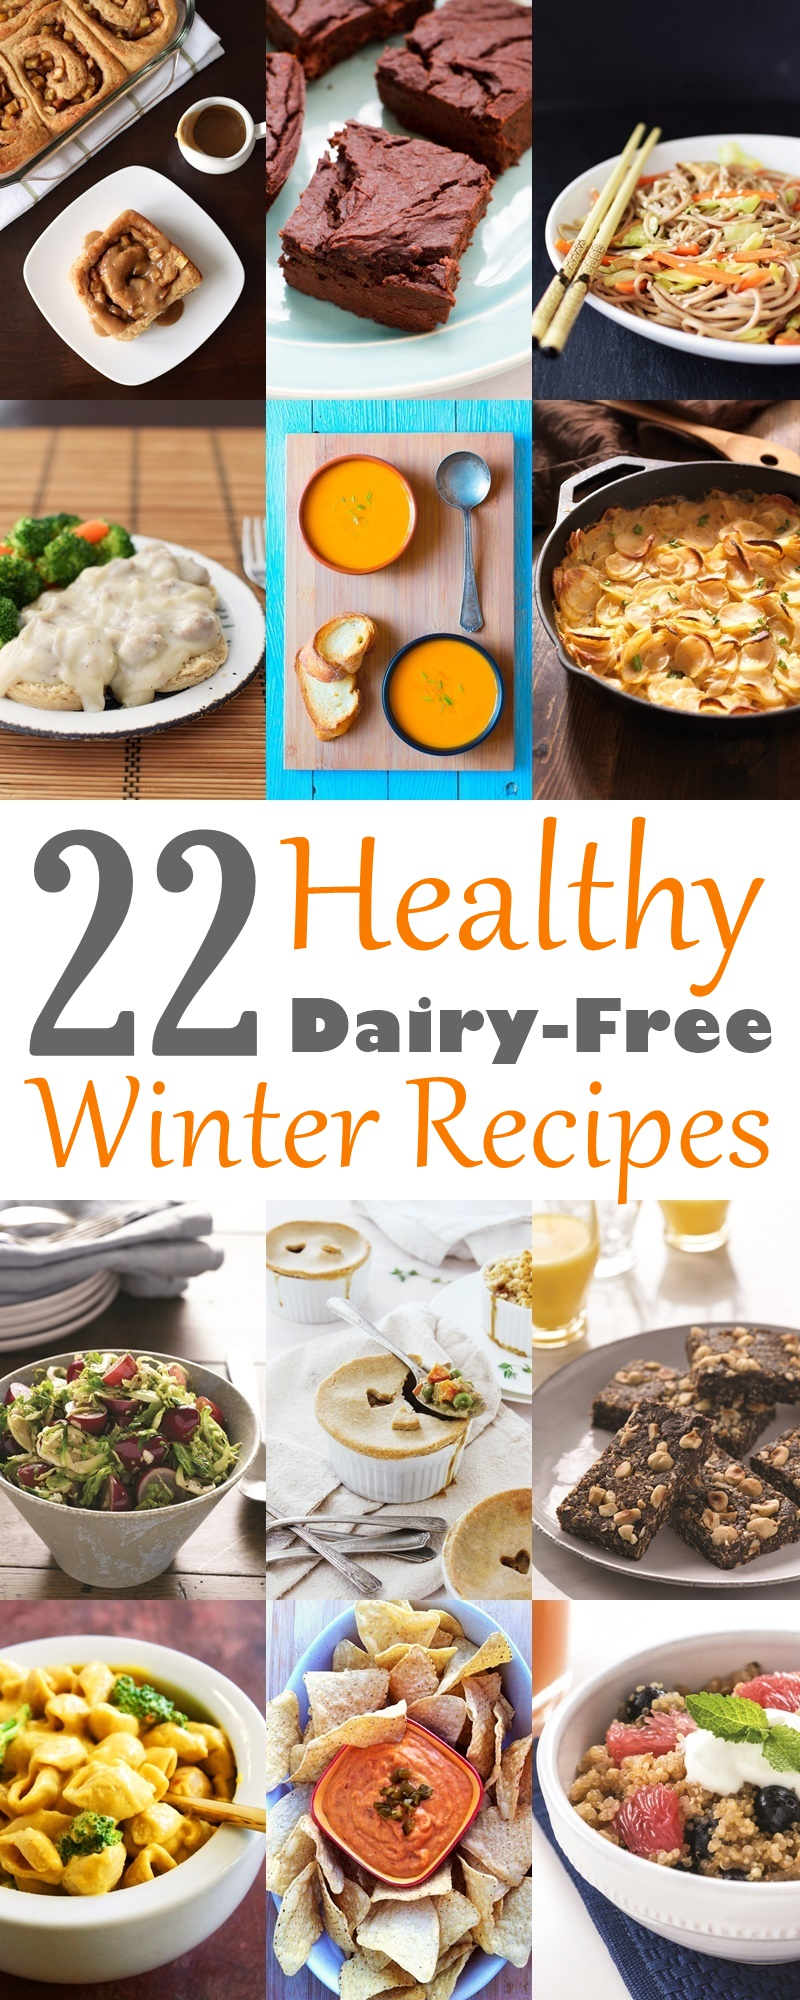 22 Healthy Winter Recipes - warm, hearty, nutritious and all dairy-free